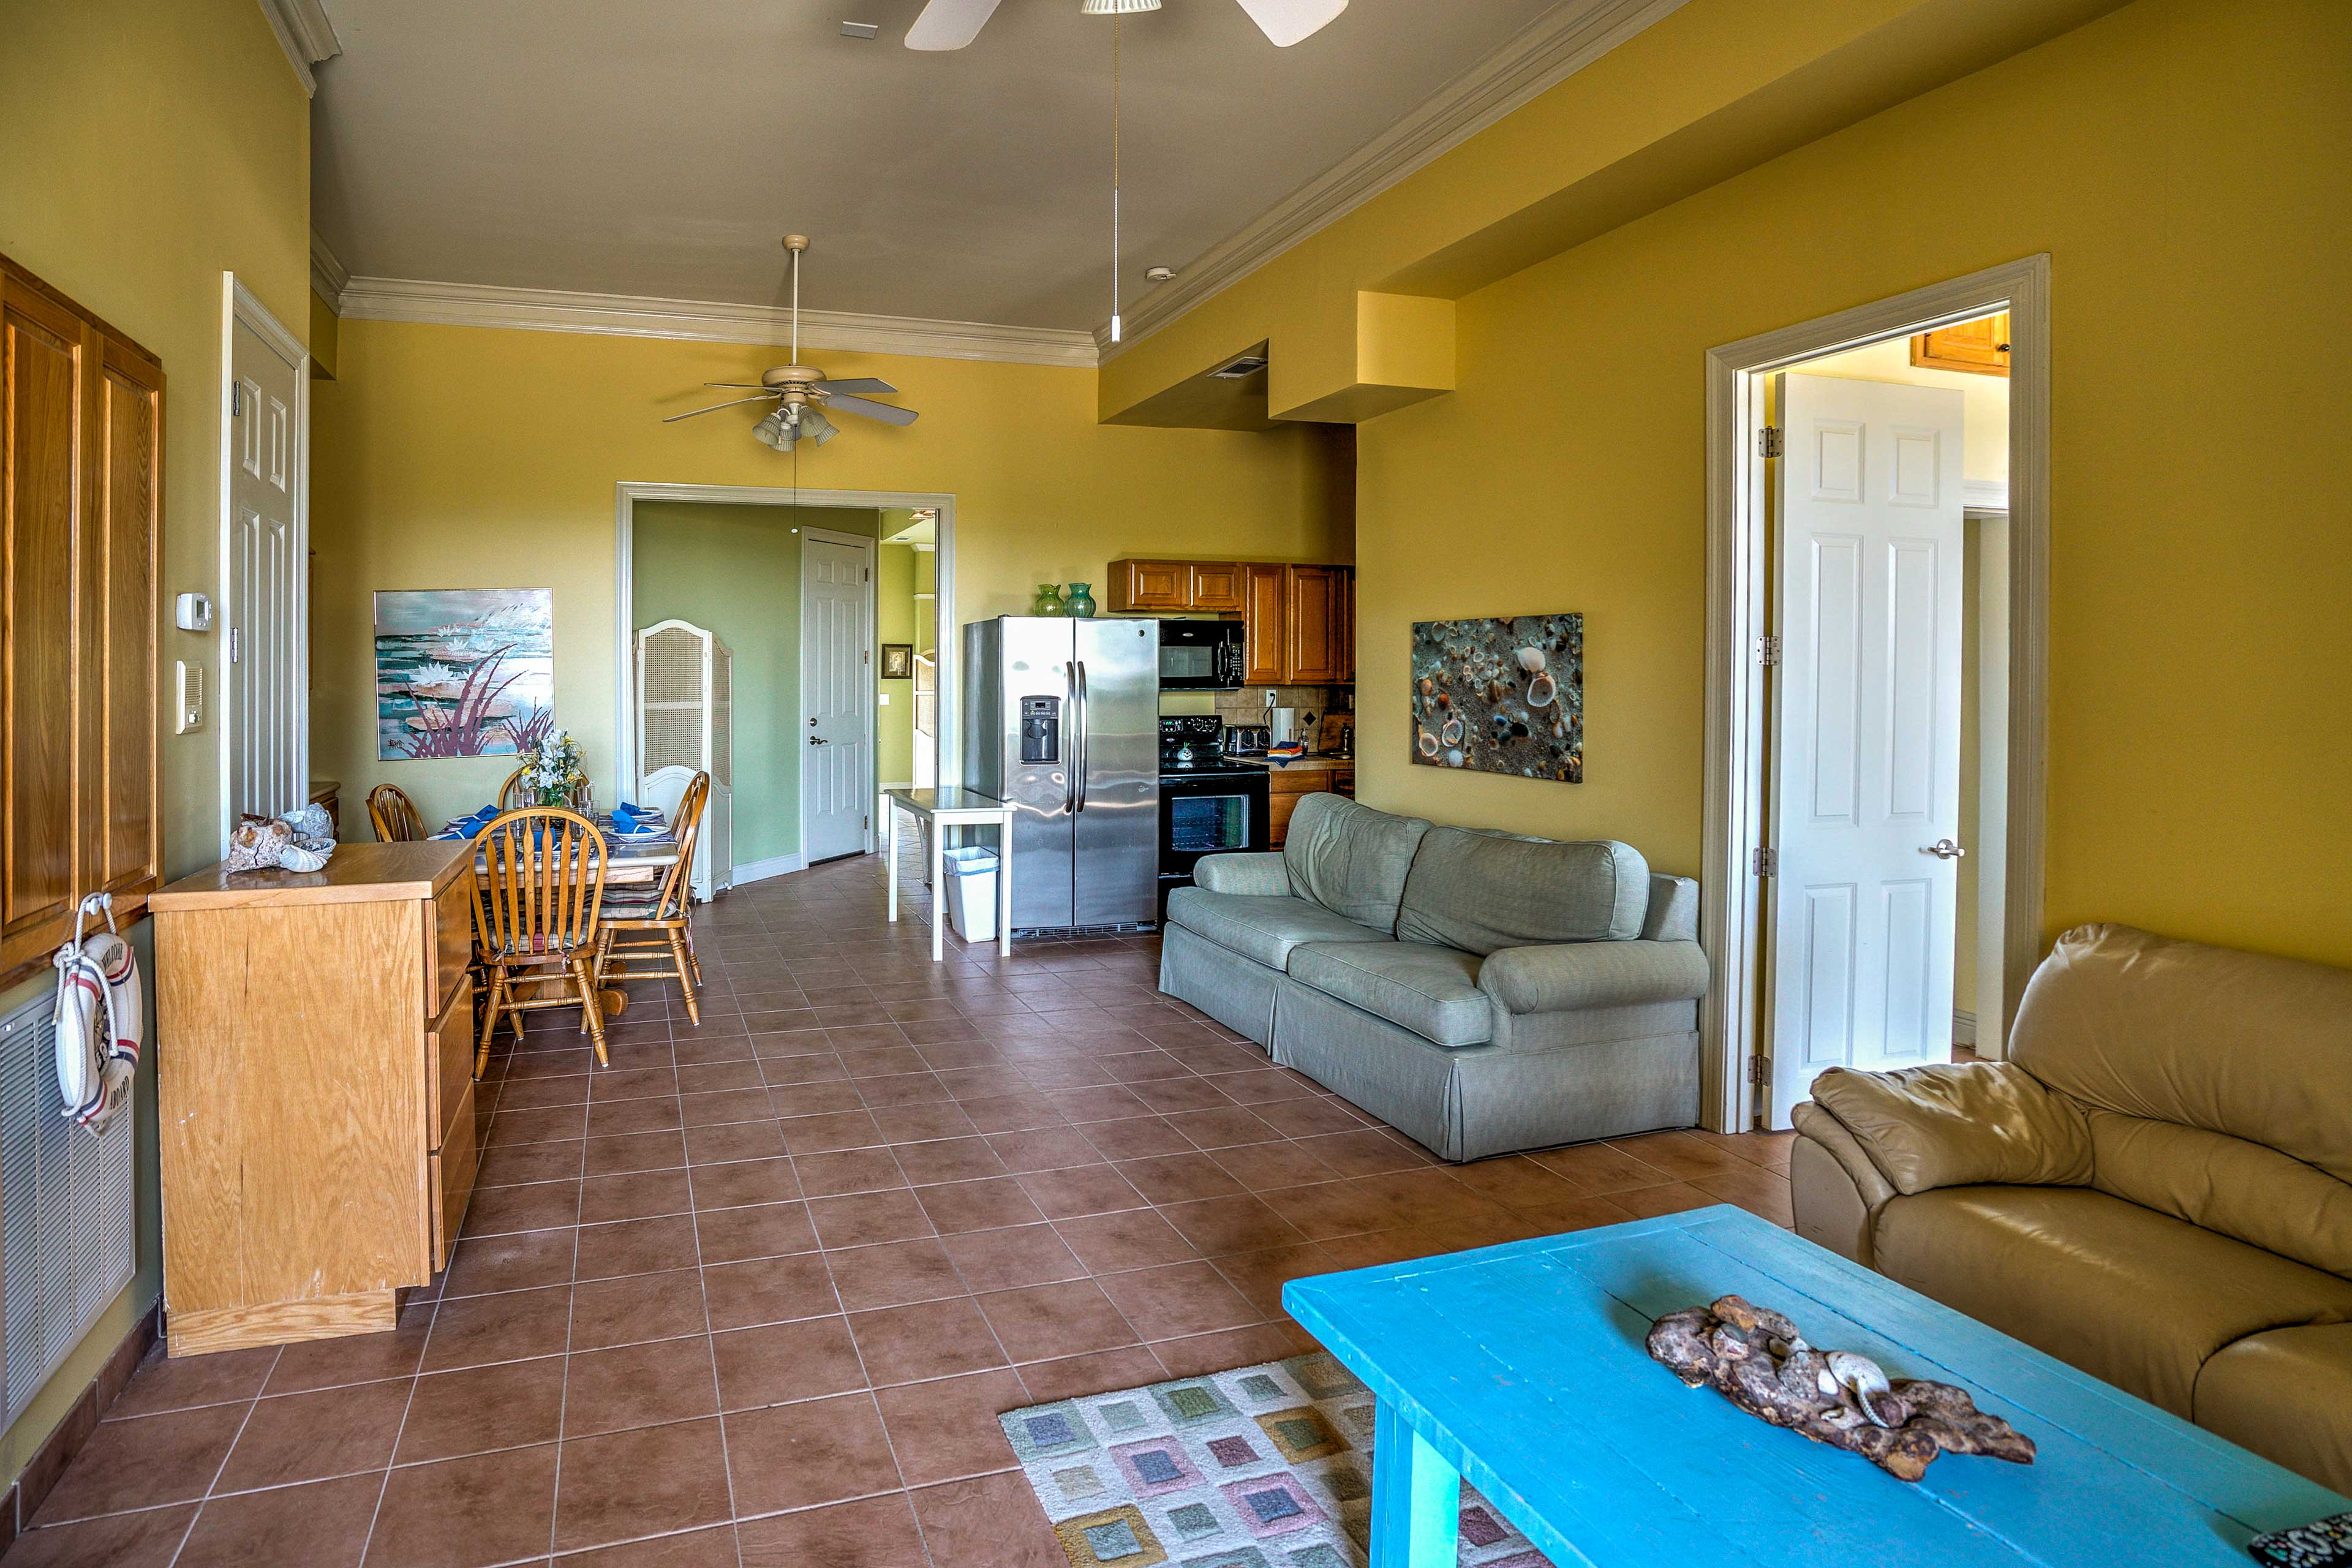 The second living space offers a living, dining area and fully equipped kitchen.